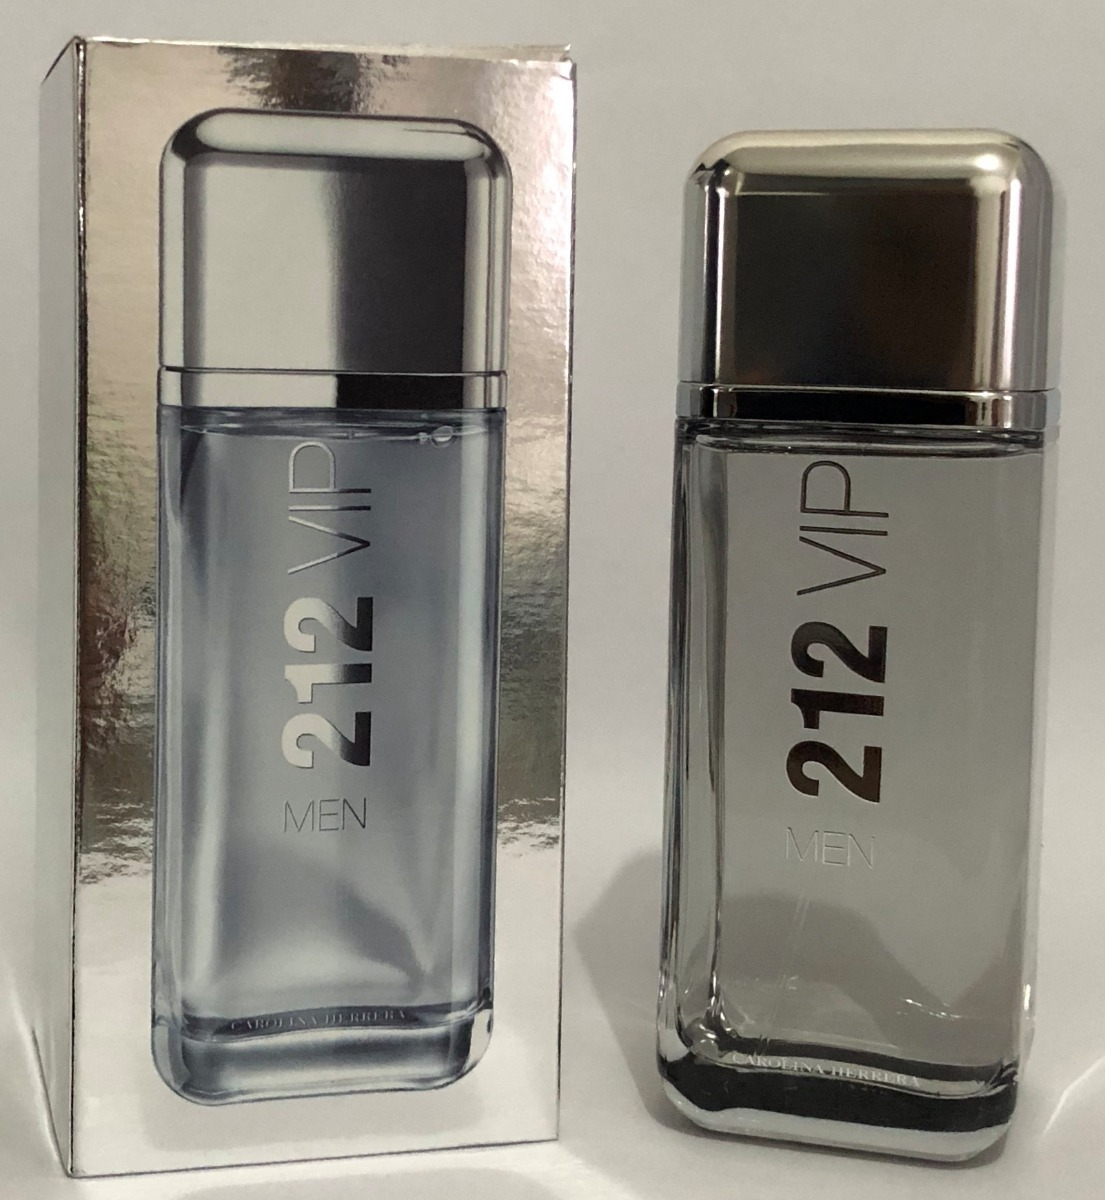 Perfume 212 Vip Men Carolina Herrera 200ml Original - R  399,00 em ... 208cf985d0